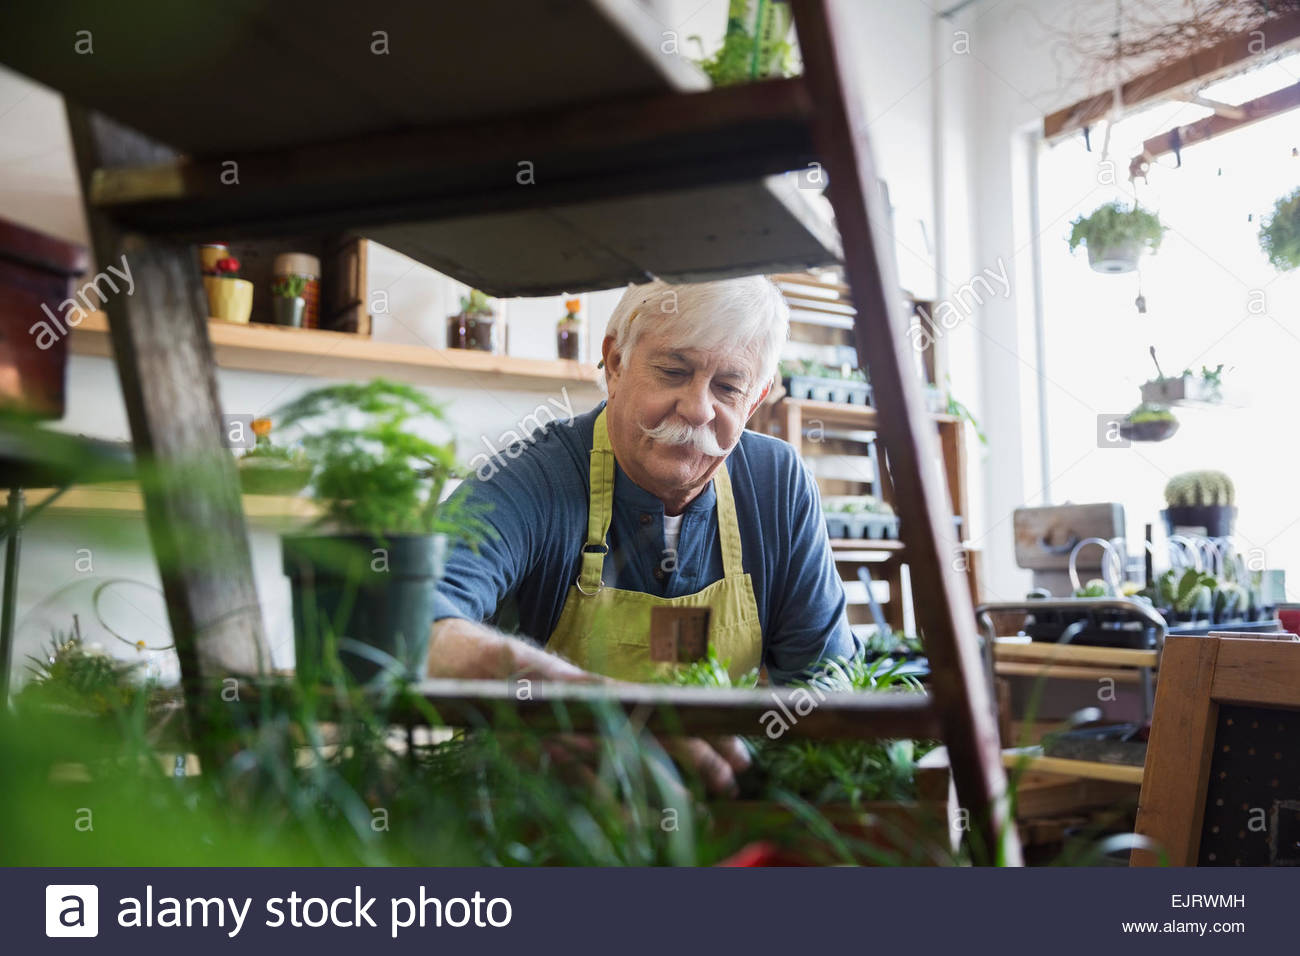 Terrarium shop owner looking at plants - Stock Image